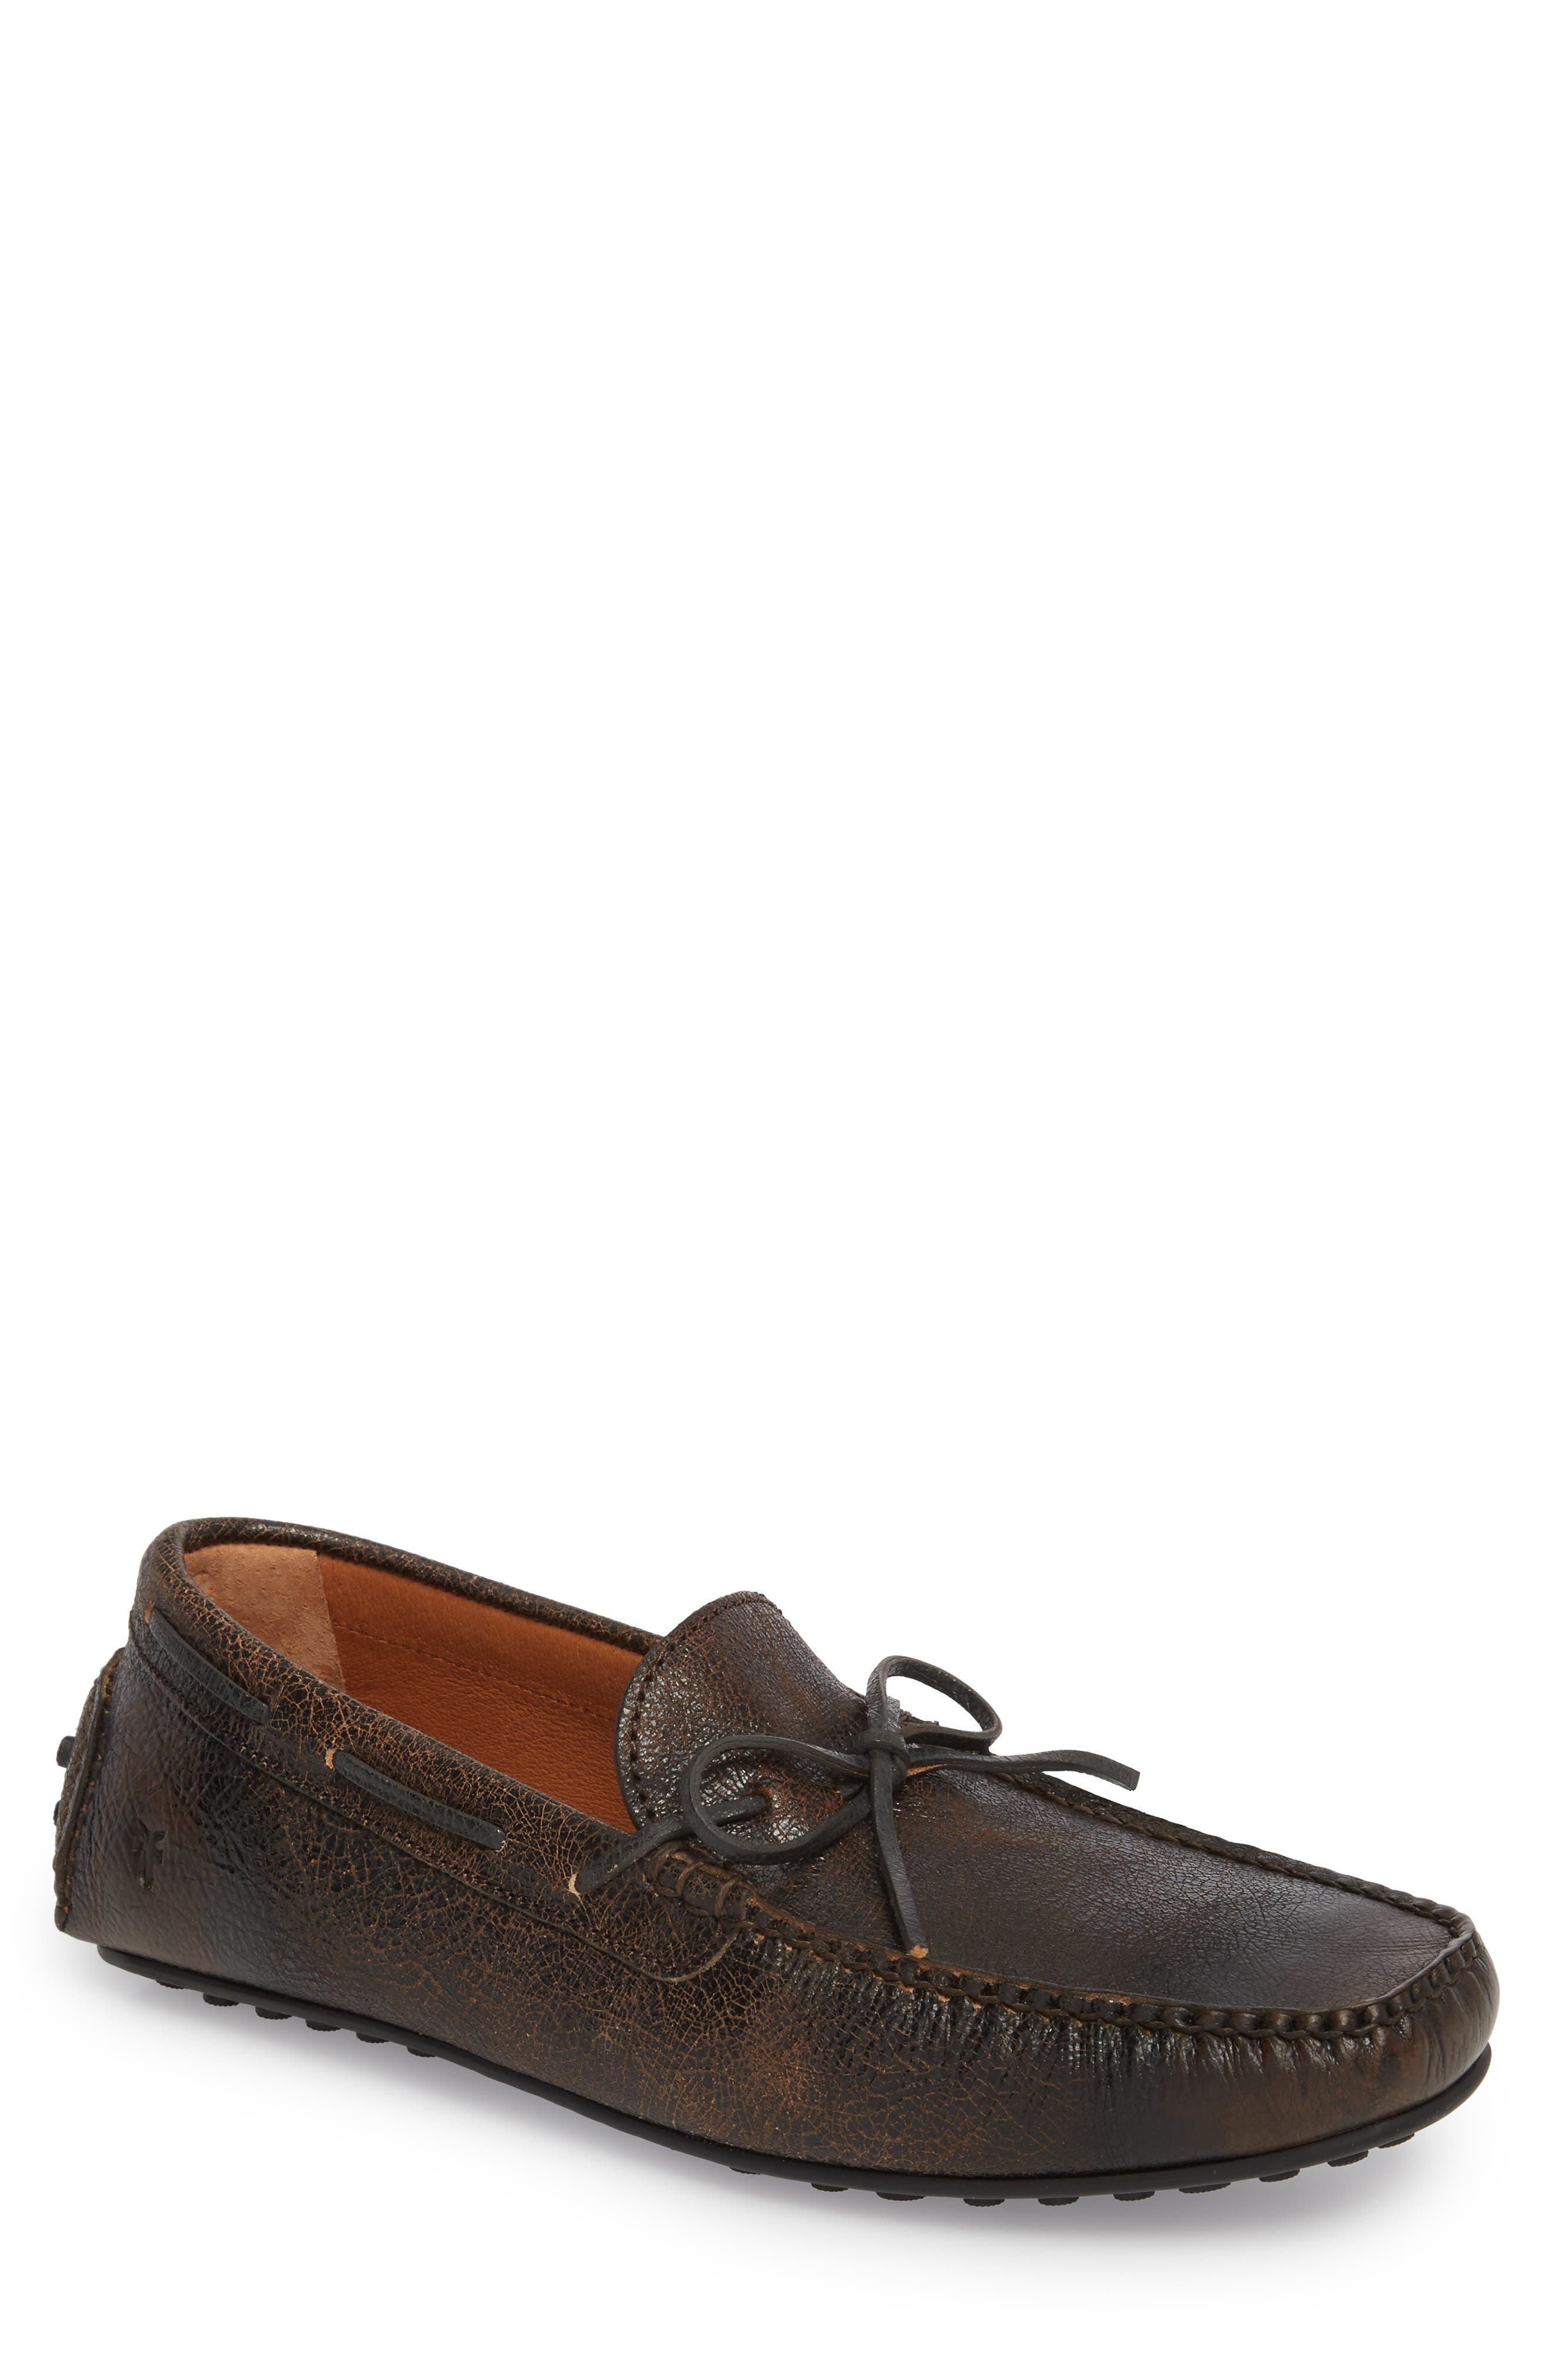 Allen Loafer,                             Main thumbnail 1, color,                             Dark Brown Leather